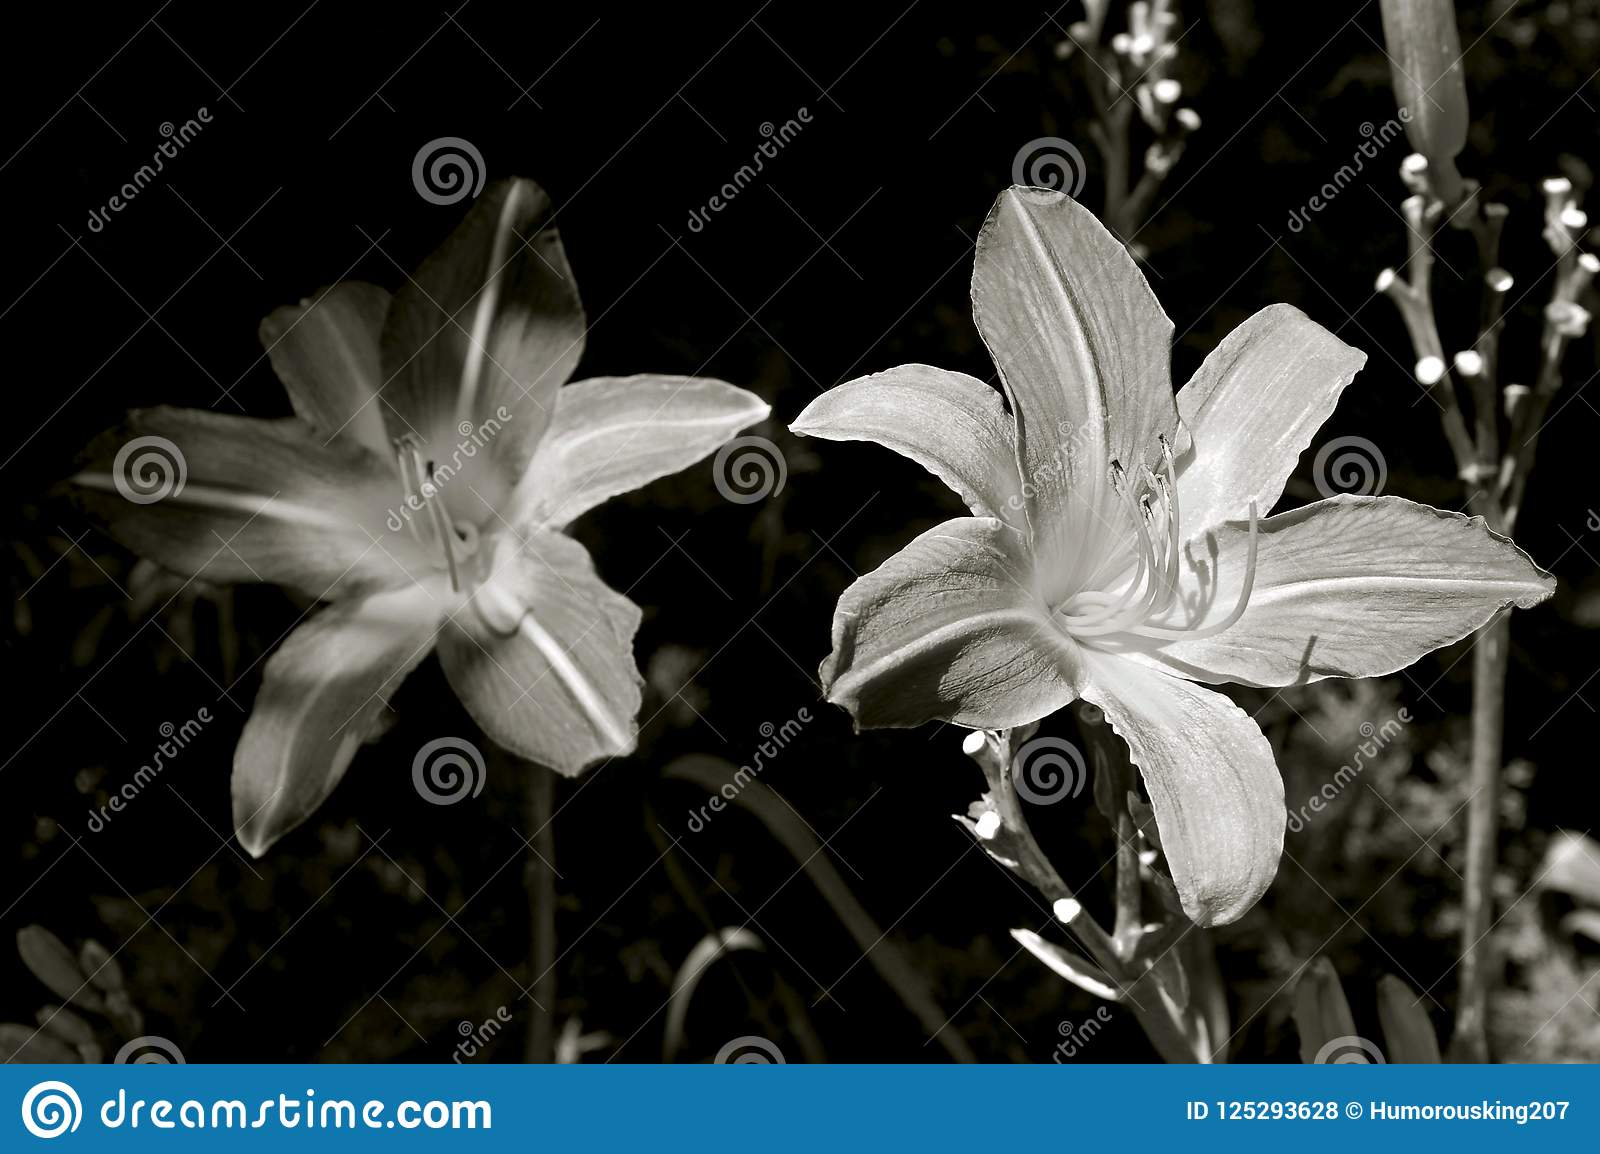 Daylily Flower In Black And White Stock Photo Image Of Color Last